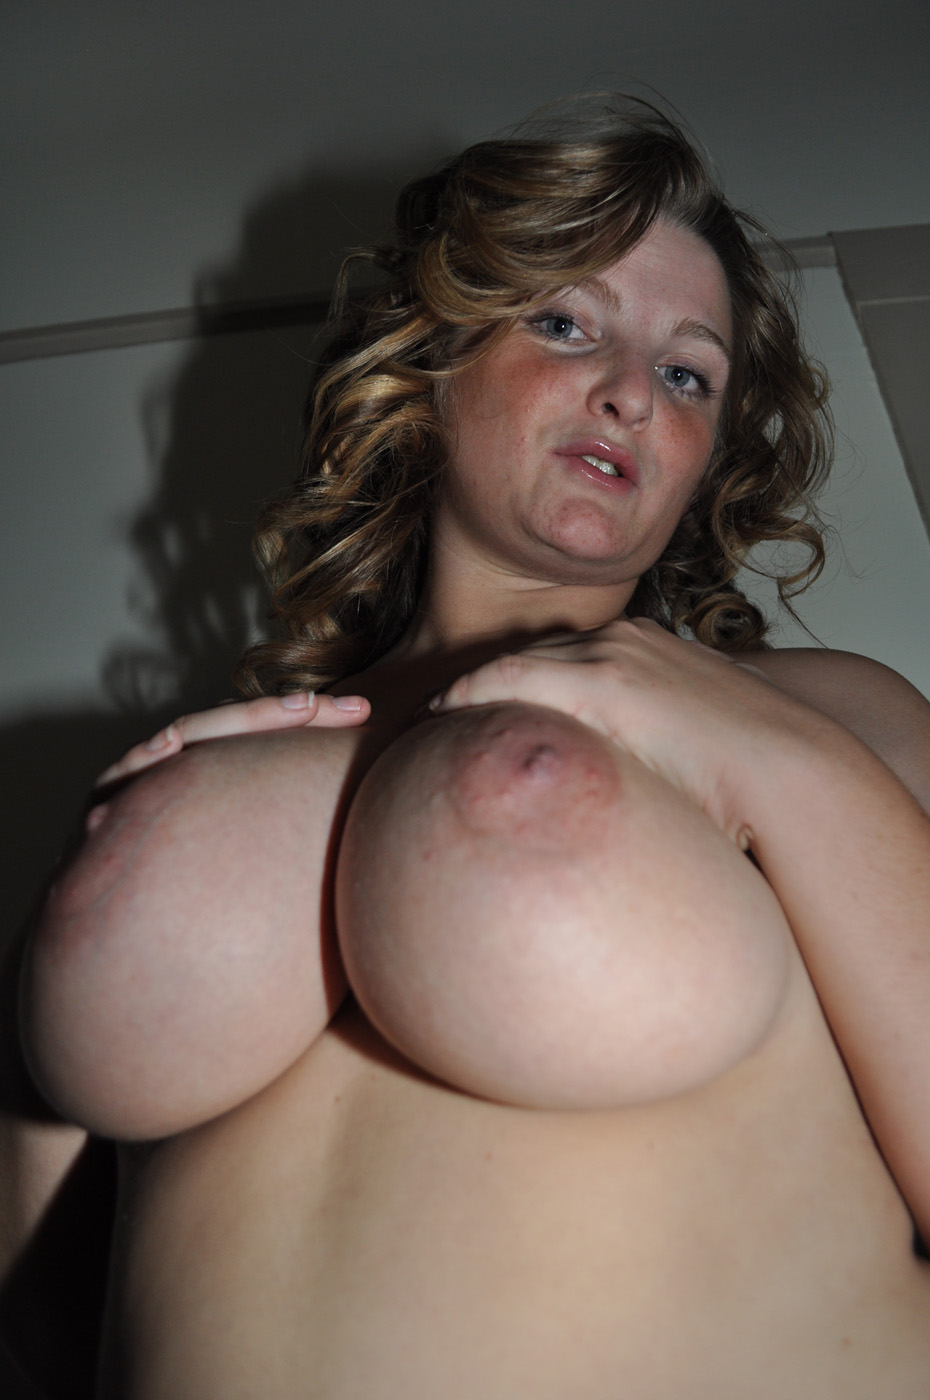 image Giant tits milf stepmom fucked by son on a horse amp carriage